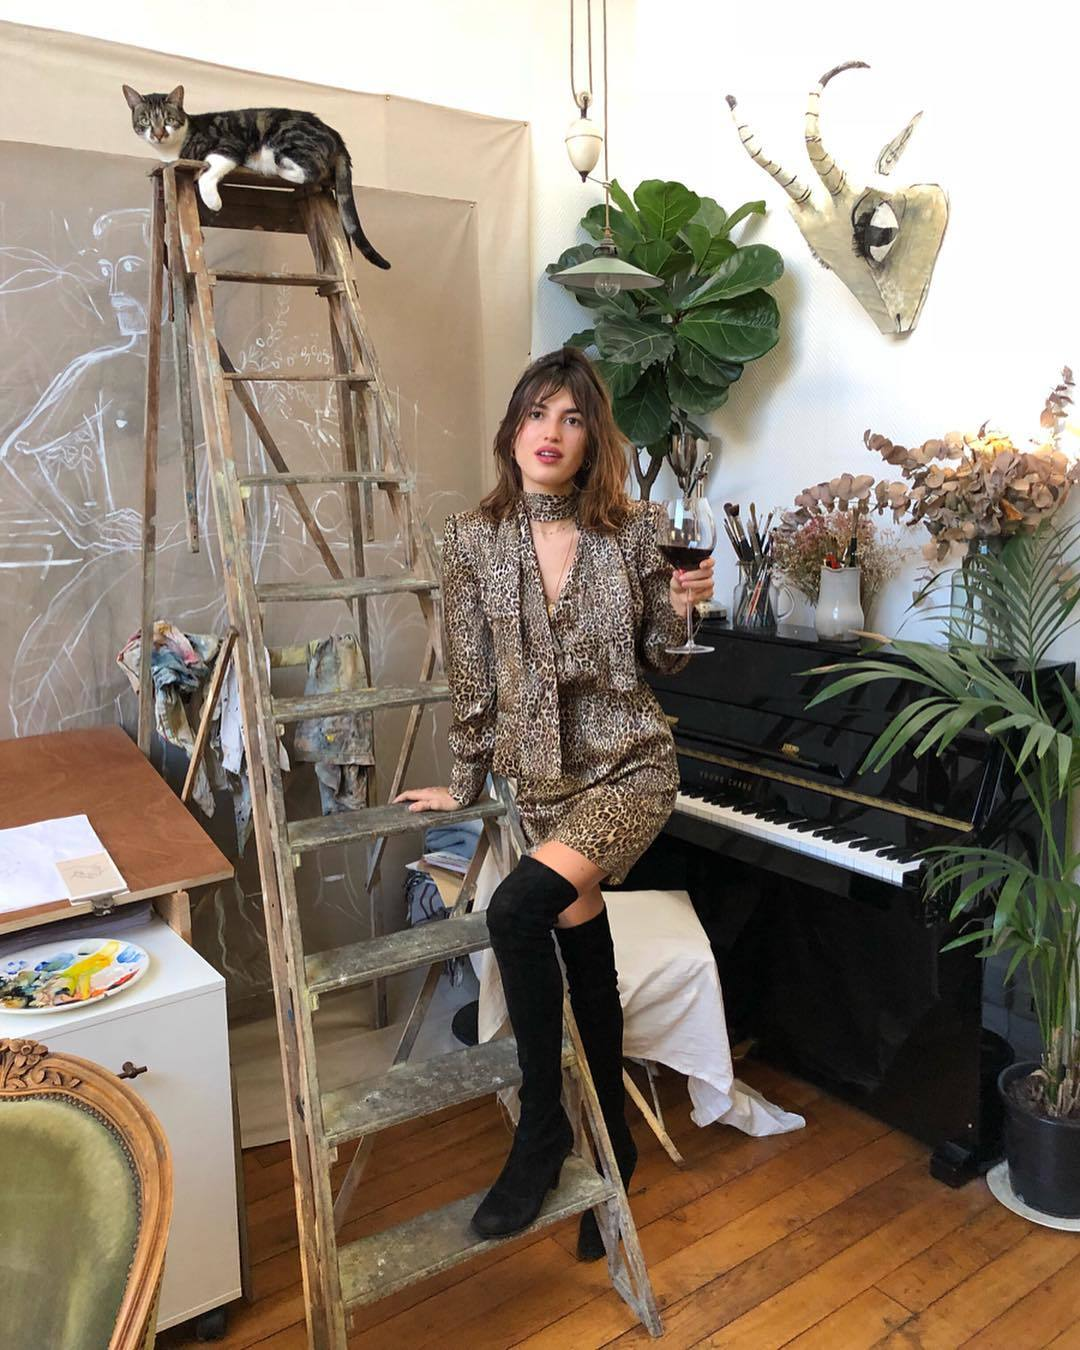 Jeanne Damas con look en leopardo.